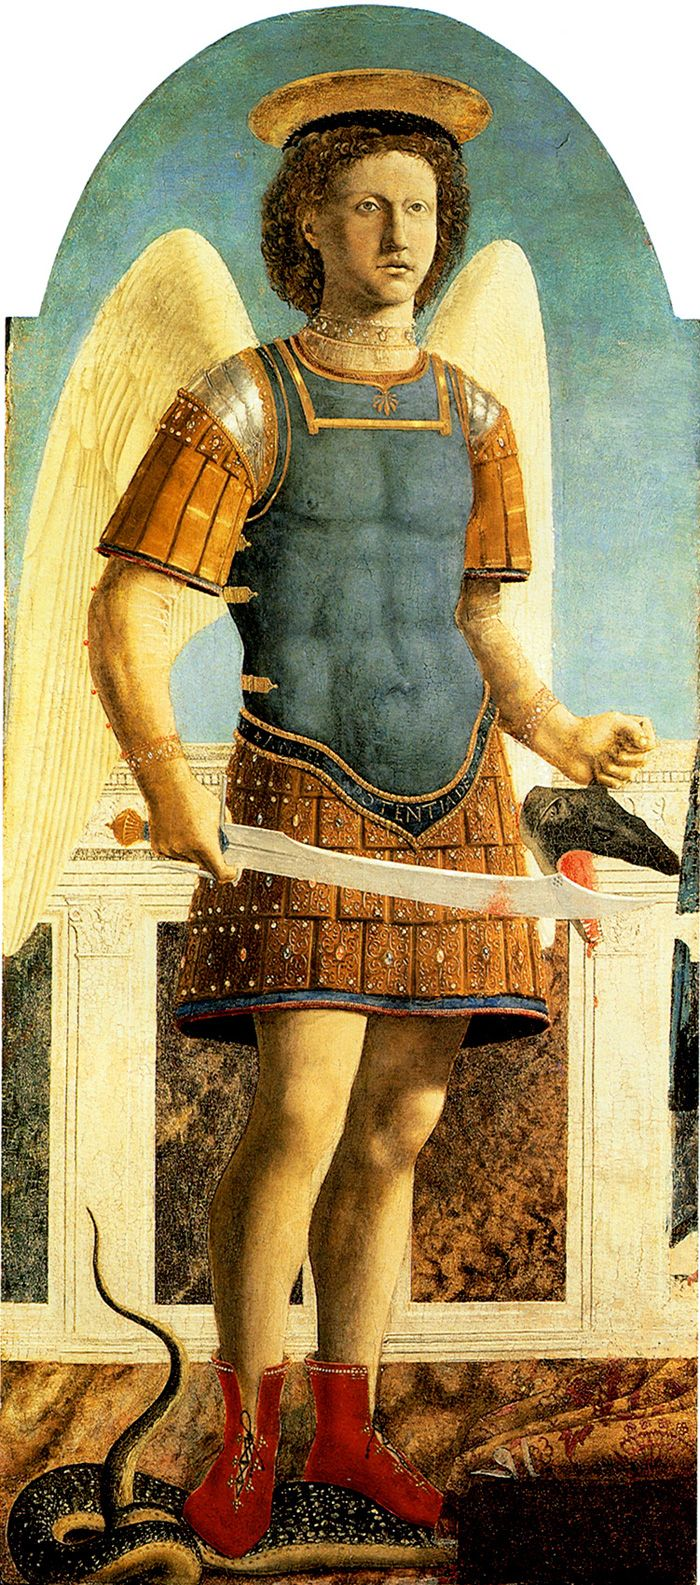 Piero della Francesca | Polyptych of Saint Augustine (1460-1470) | Podere Santa Pia, Holiday house in the south of Tuscany